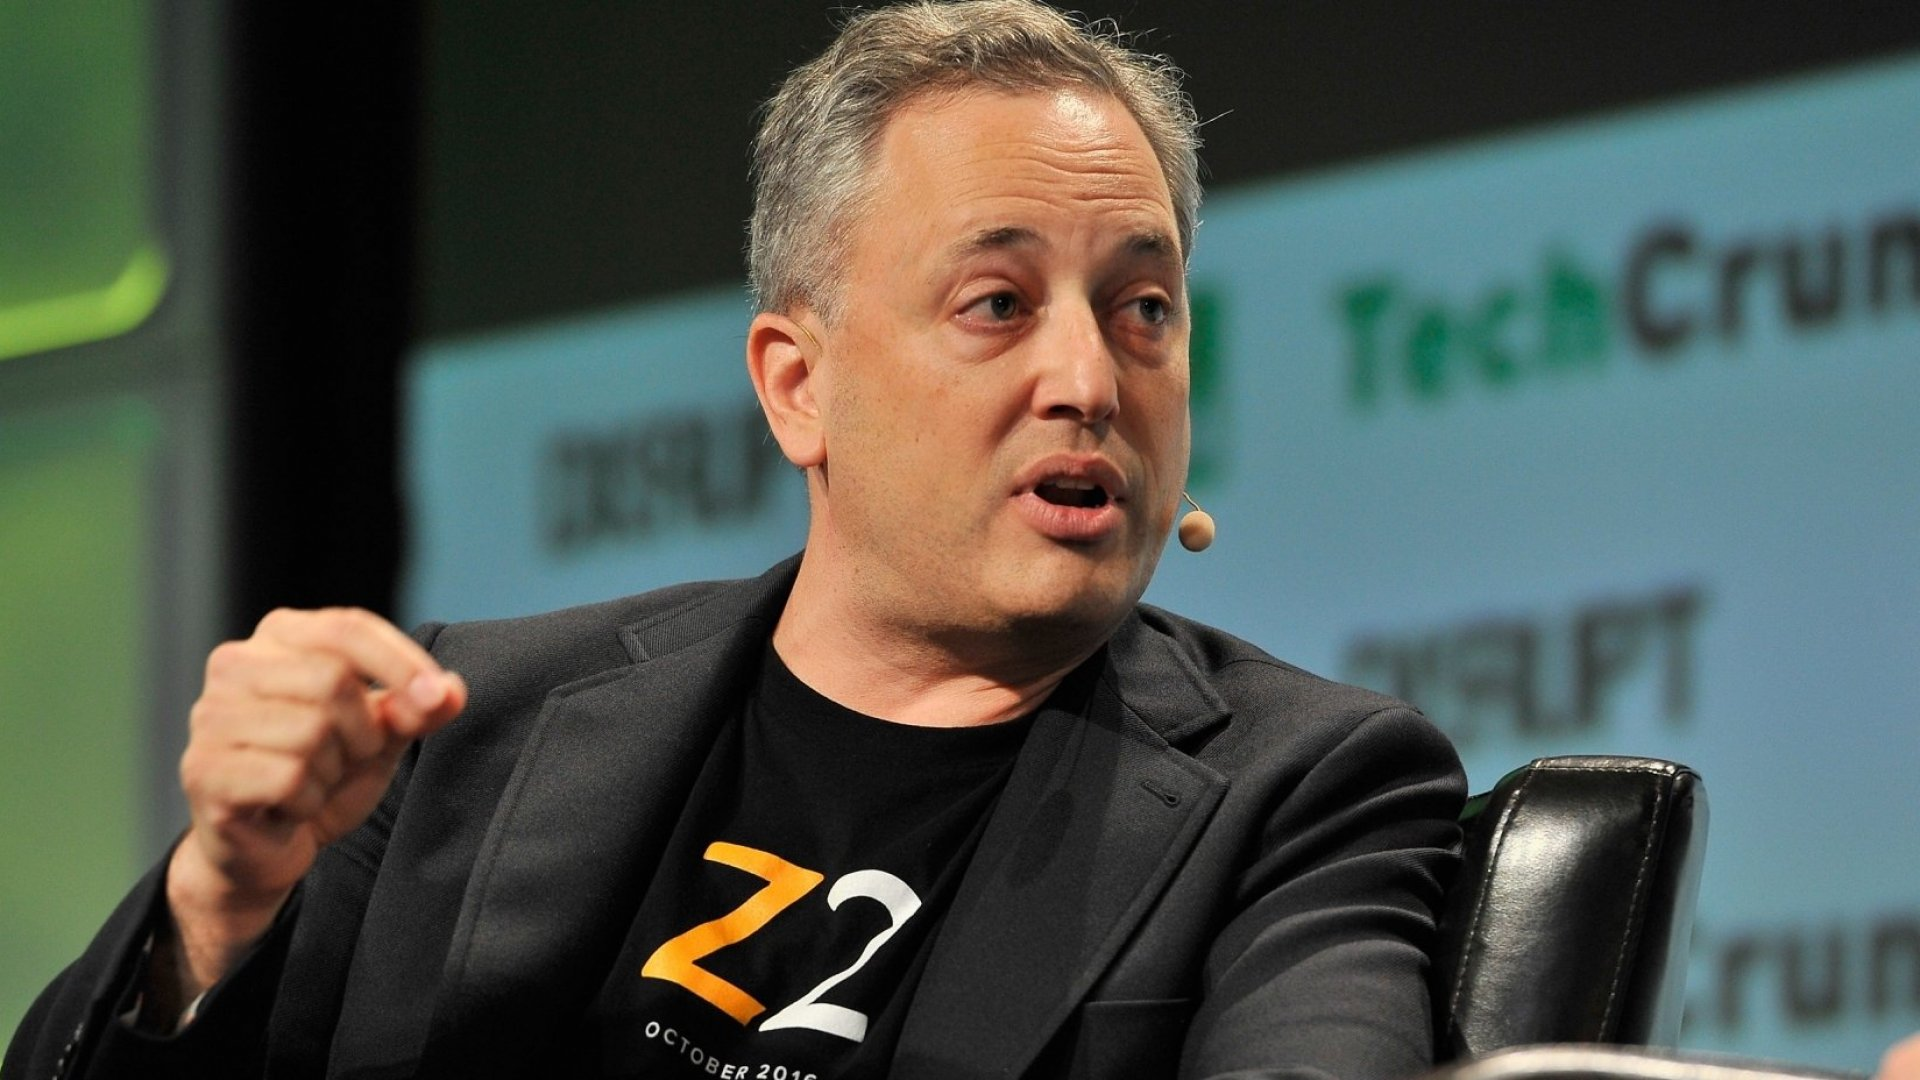 Zenefits Just Laid Off Nearly Half Its Staff. Here's the Email That Broke the News